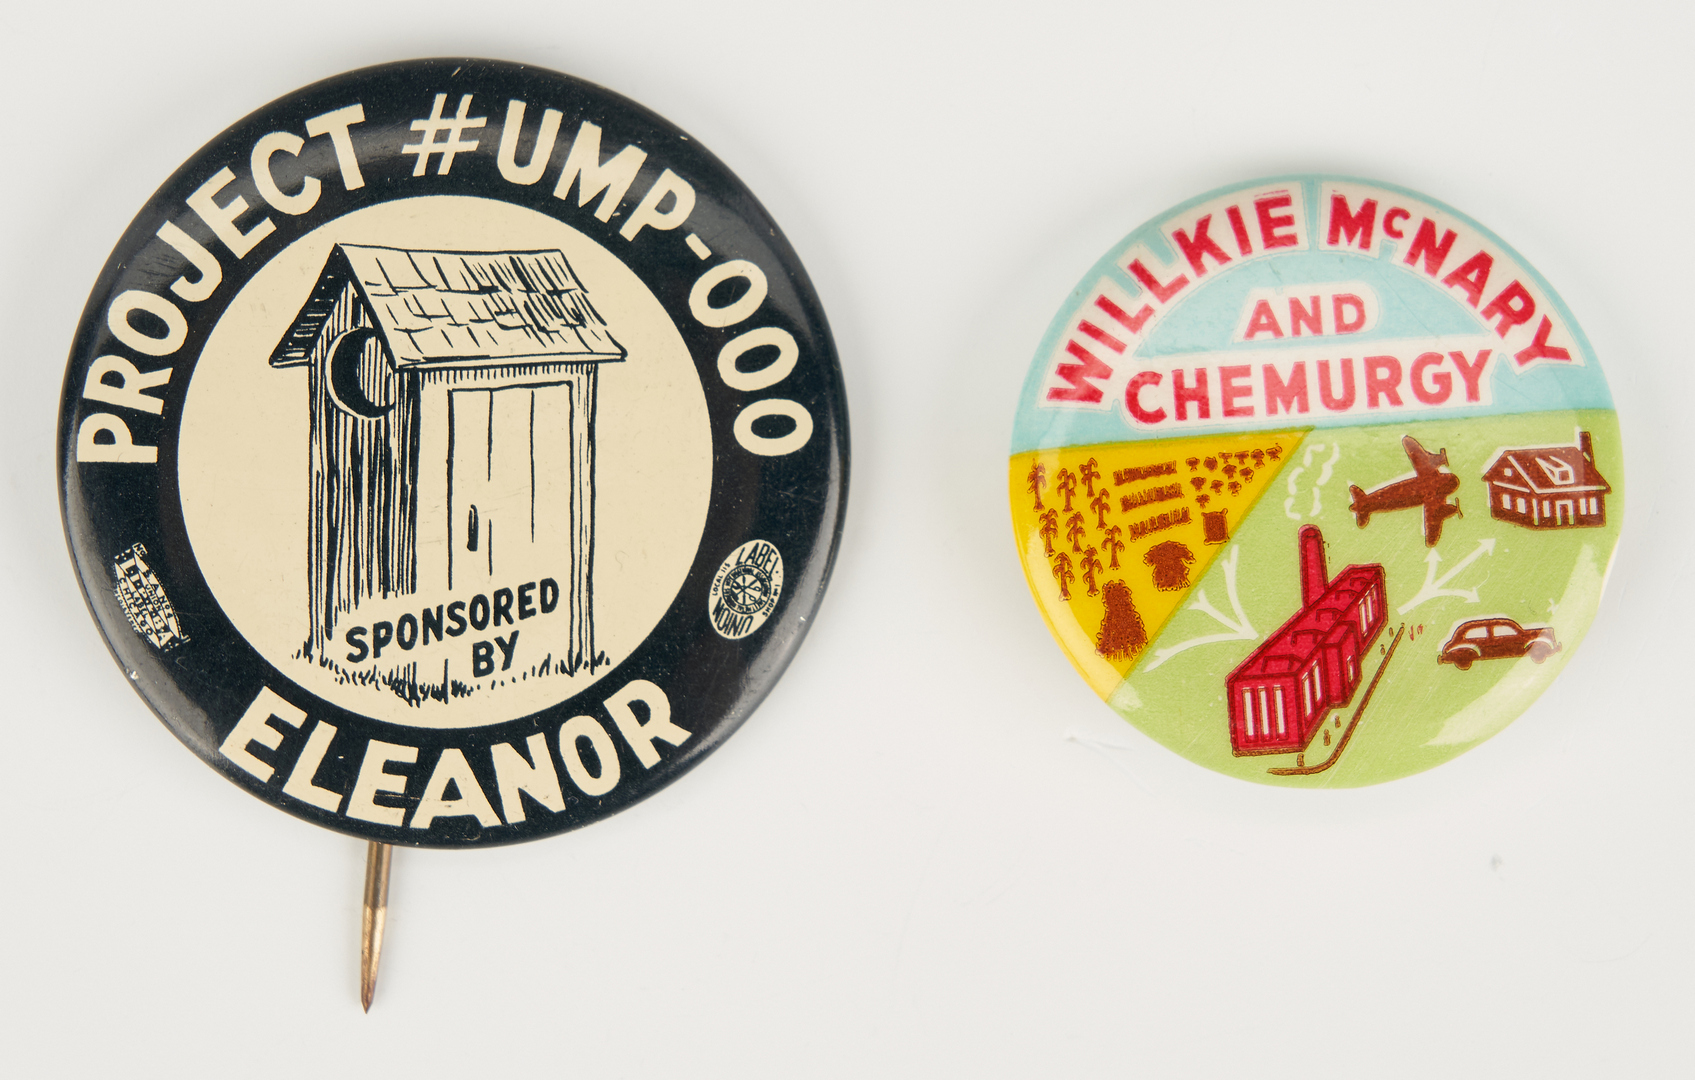 Lot 684: 5 Wendell Wilkie Buttons, incl. Willkie McNary and Chemurgy Button